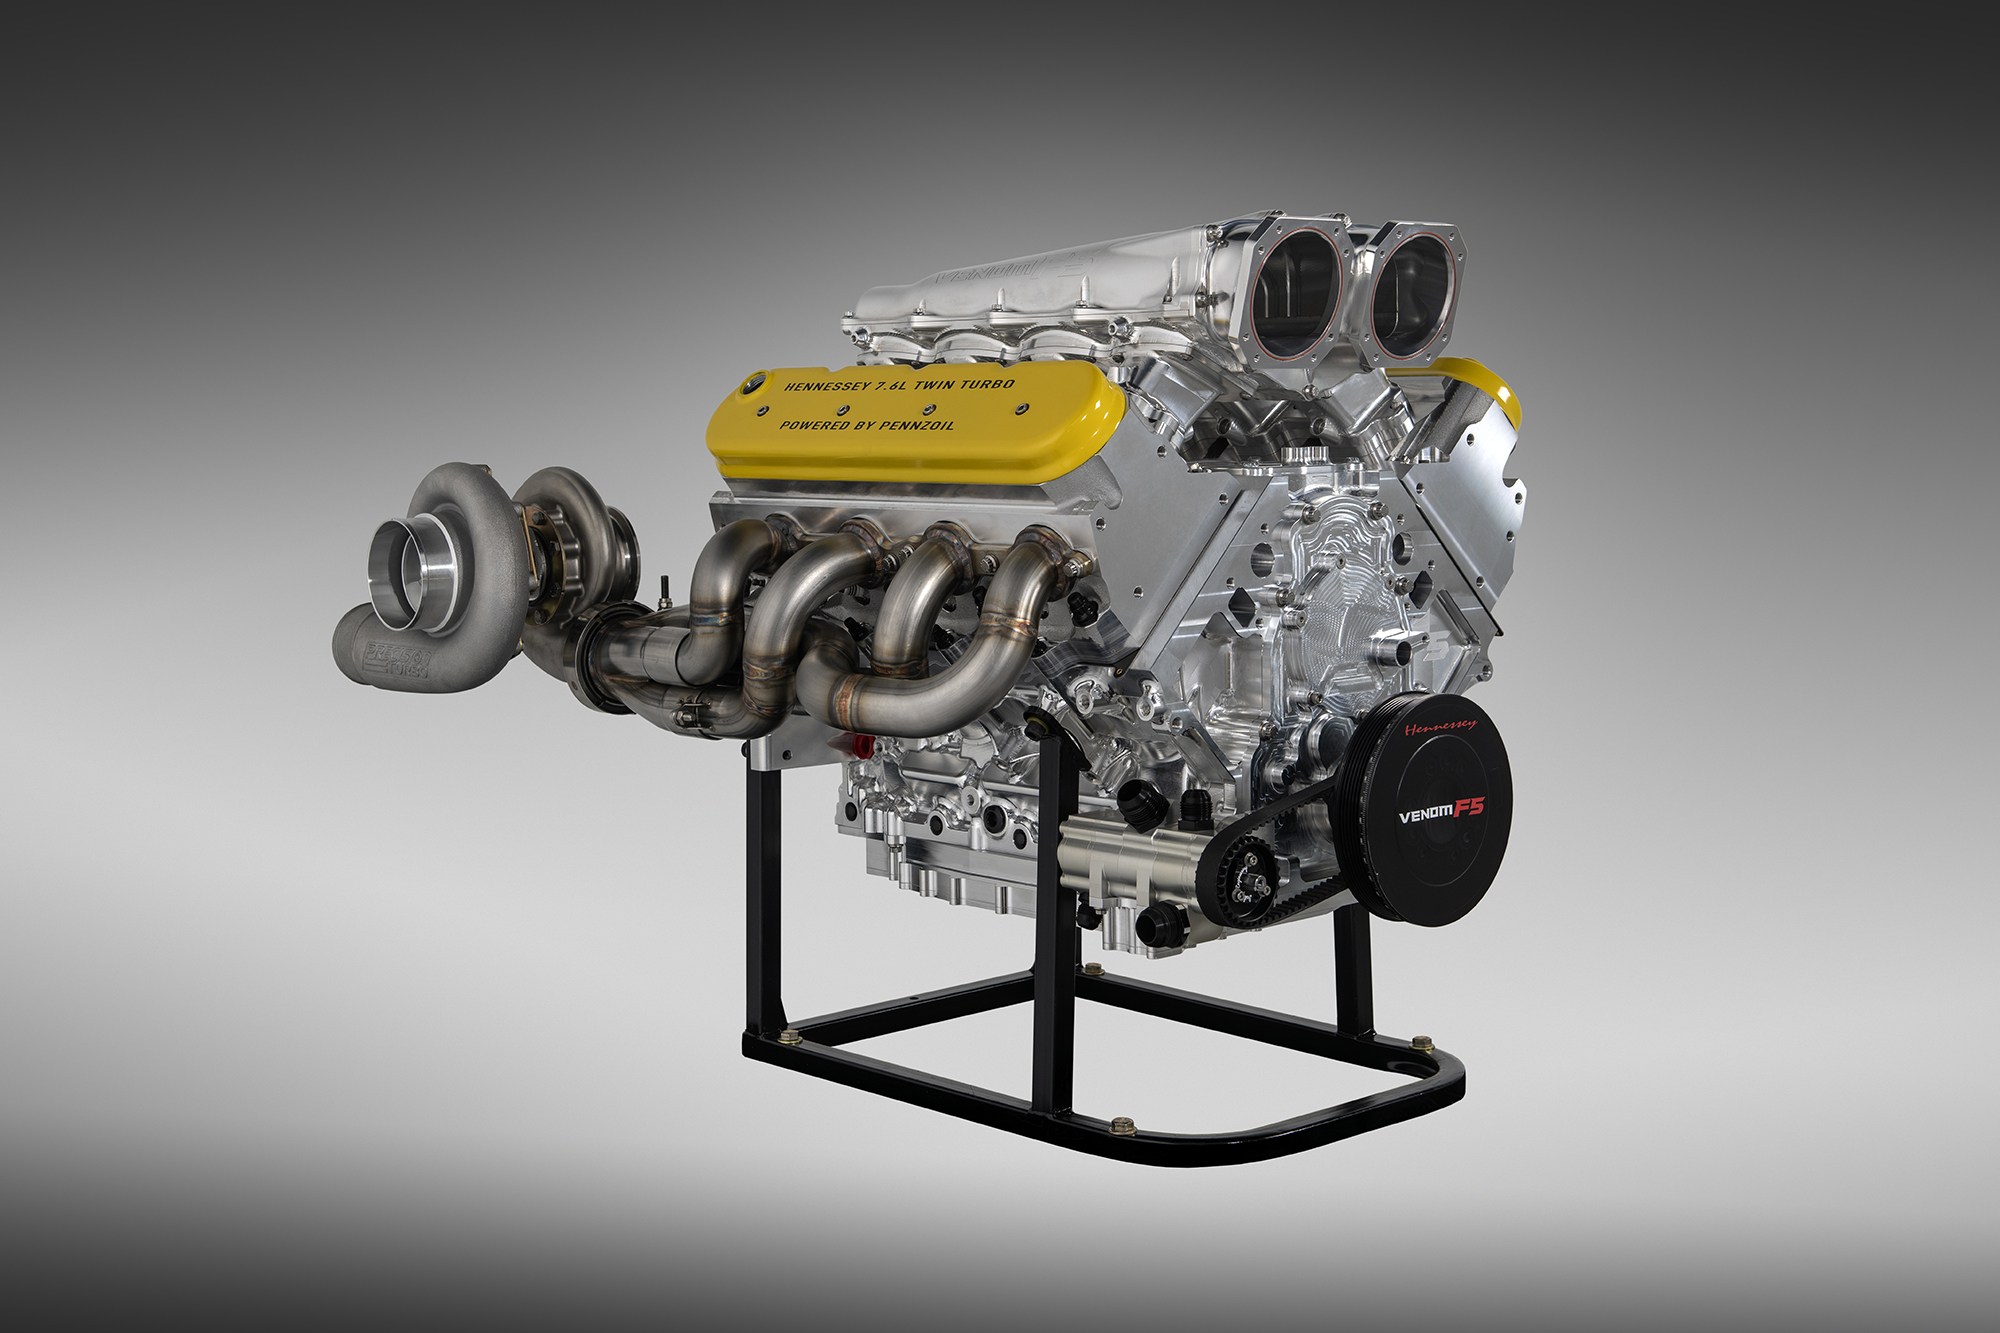 Venom F5 Engine Details